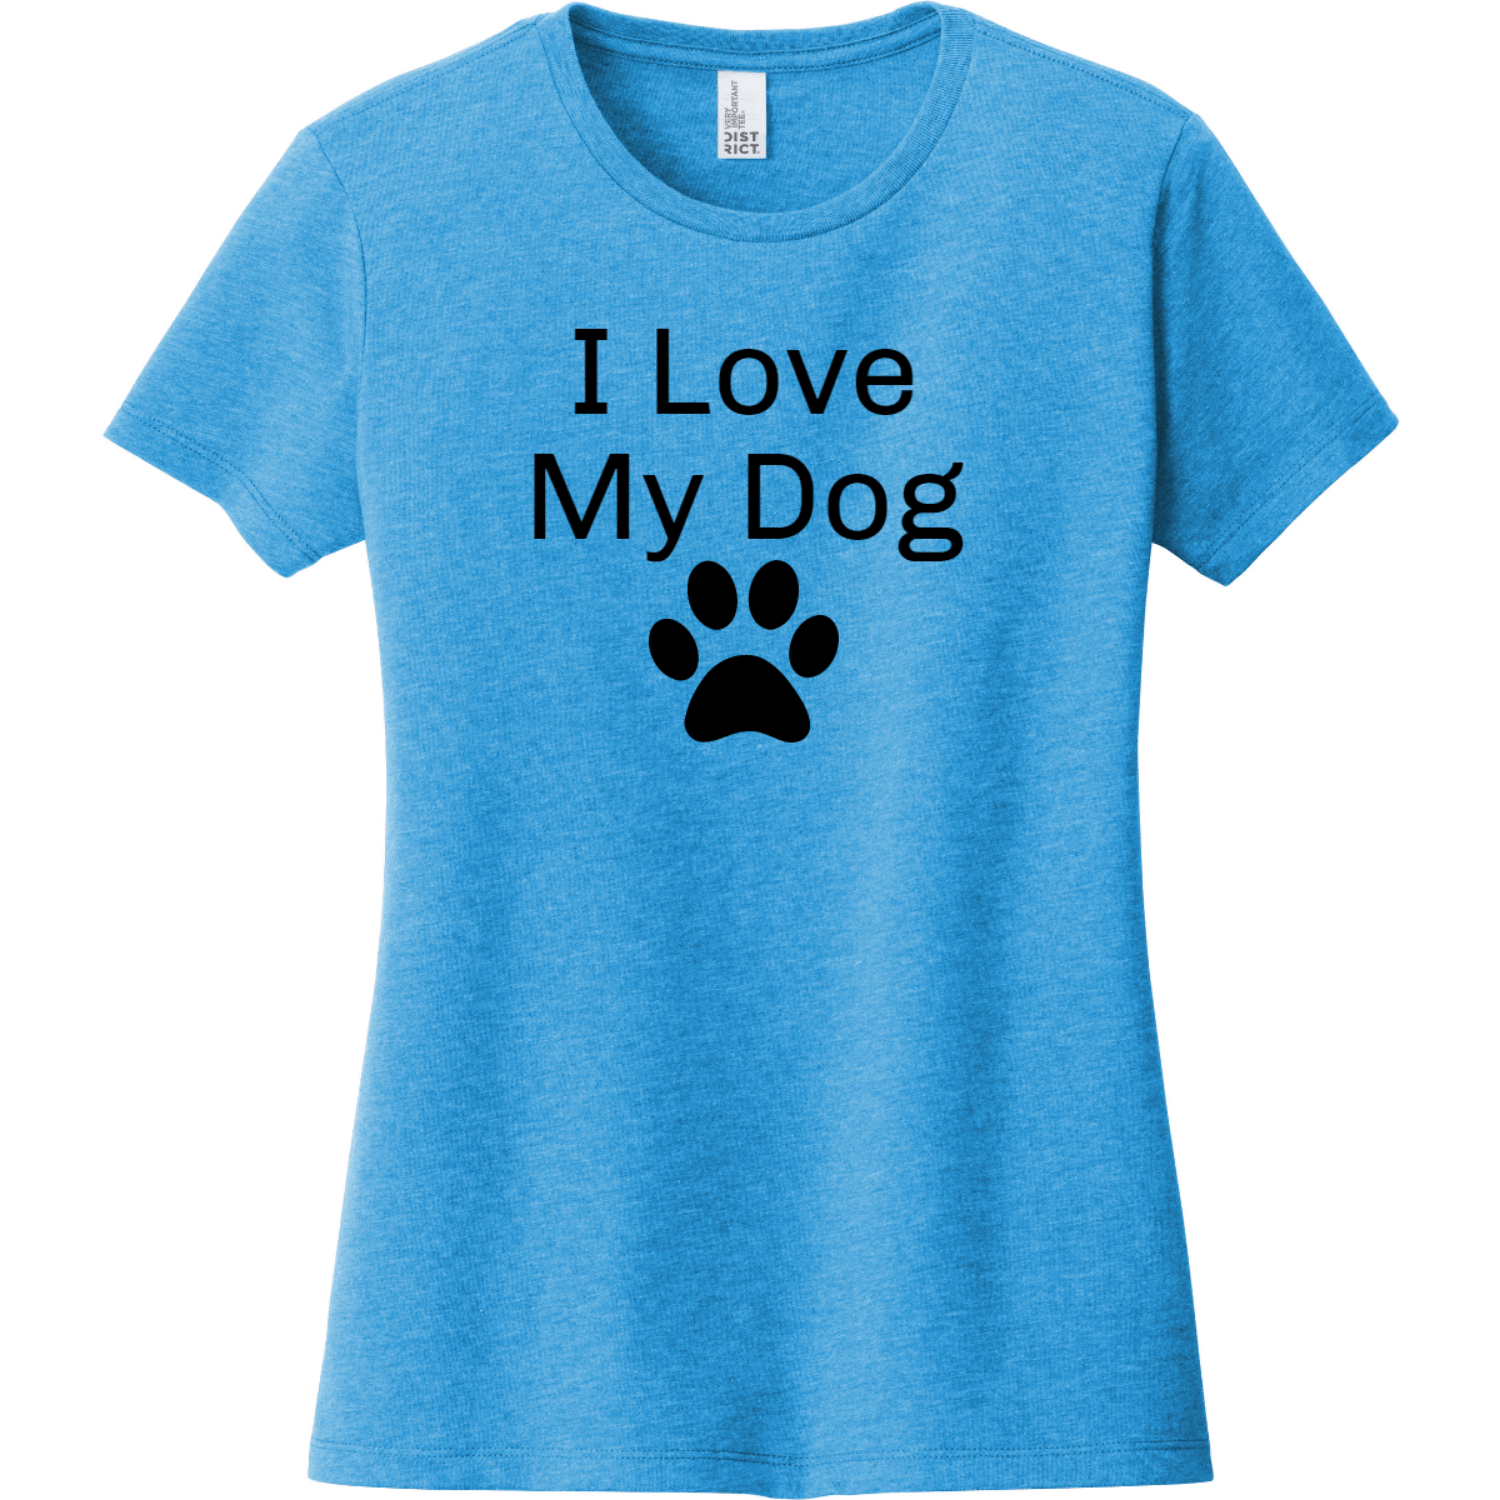 I Love My Dog Women's T-Shirt Heathered Bright Turquoise District Women's Very Important Tee DT6002